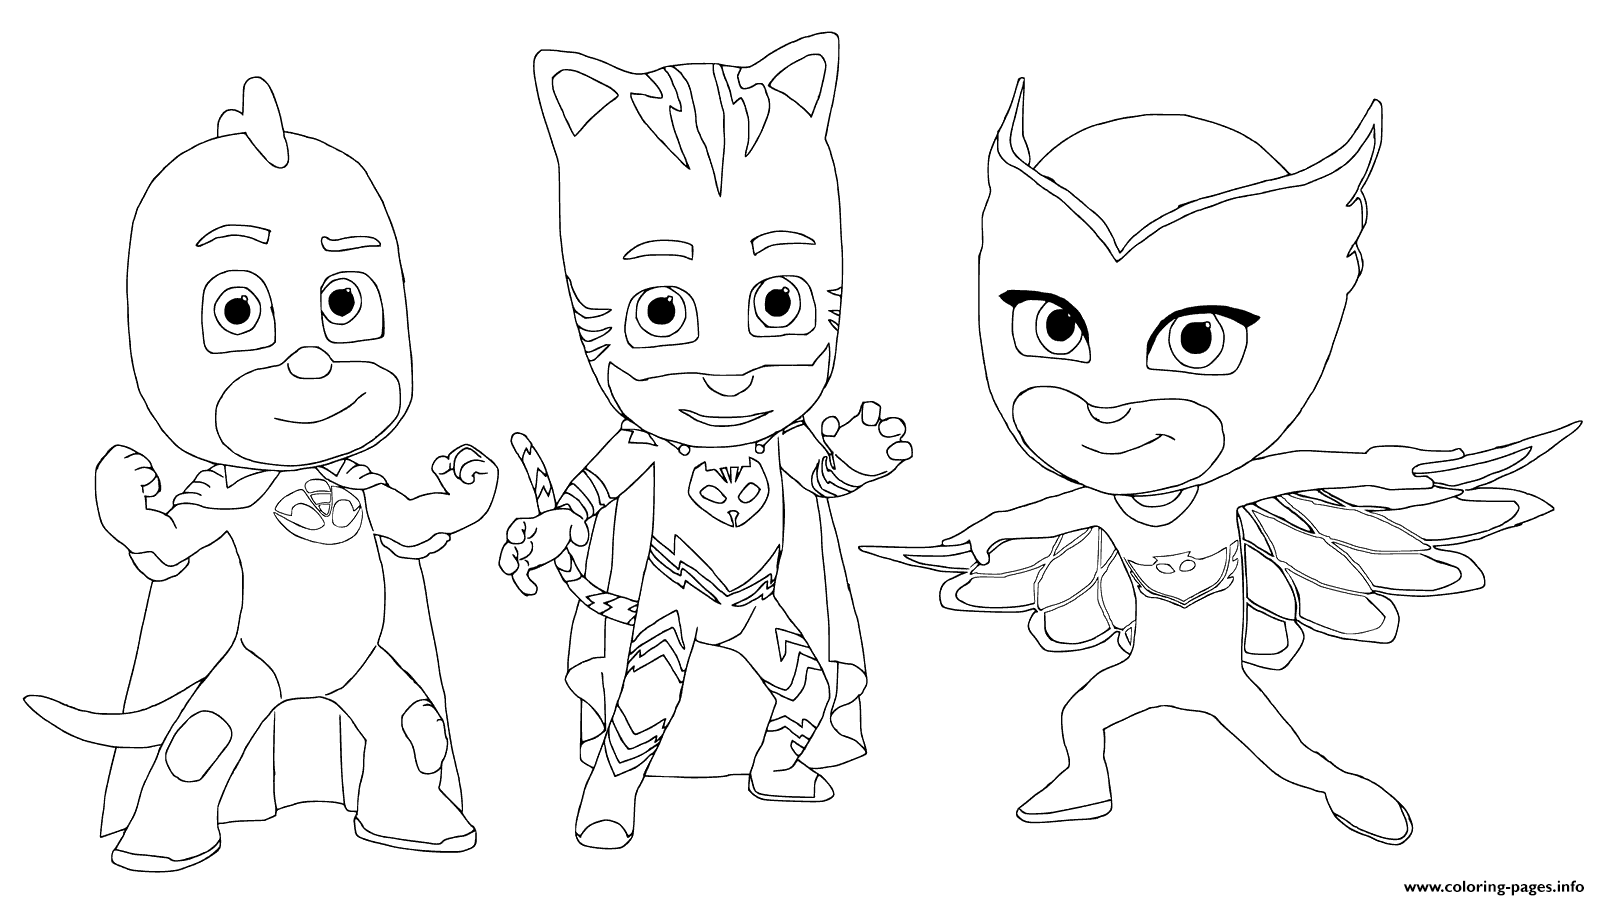 - PJ Masks With Friends Coloring Pages Printable